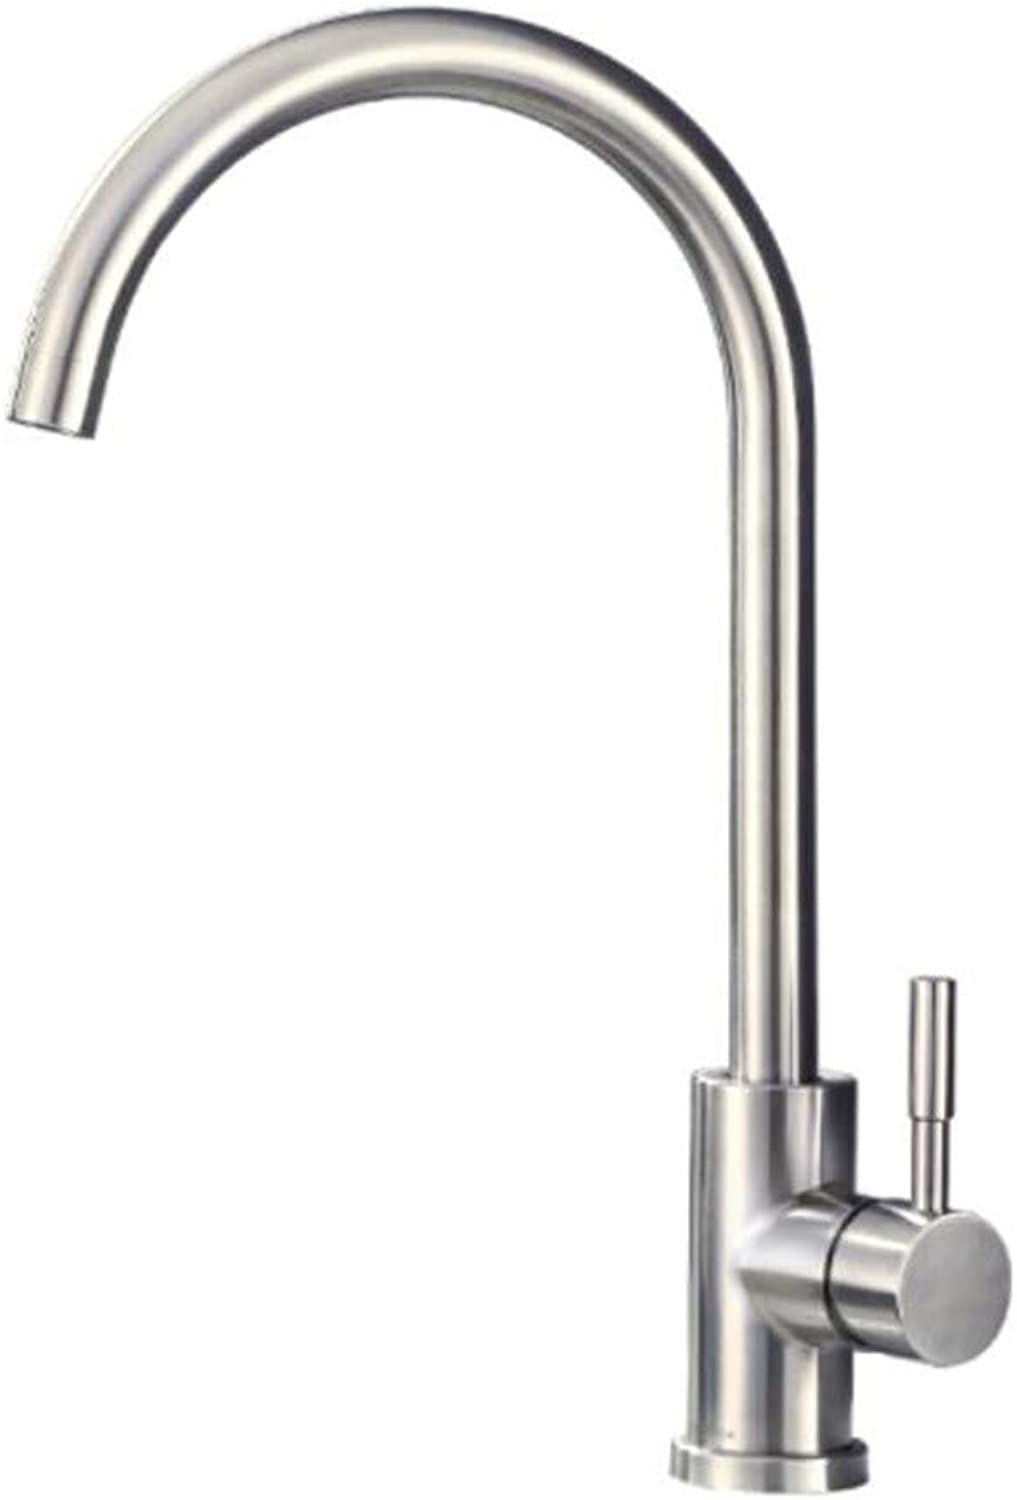 Taps Mixer?Swivel?Faucet Sink Kitchen Faucet 304 Stainless Steel Cold and Hot Water Tank, Vegetable Washing Basin, Table Basin and Basin Faucet